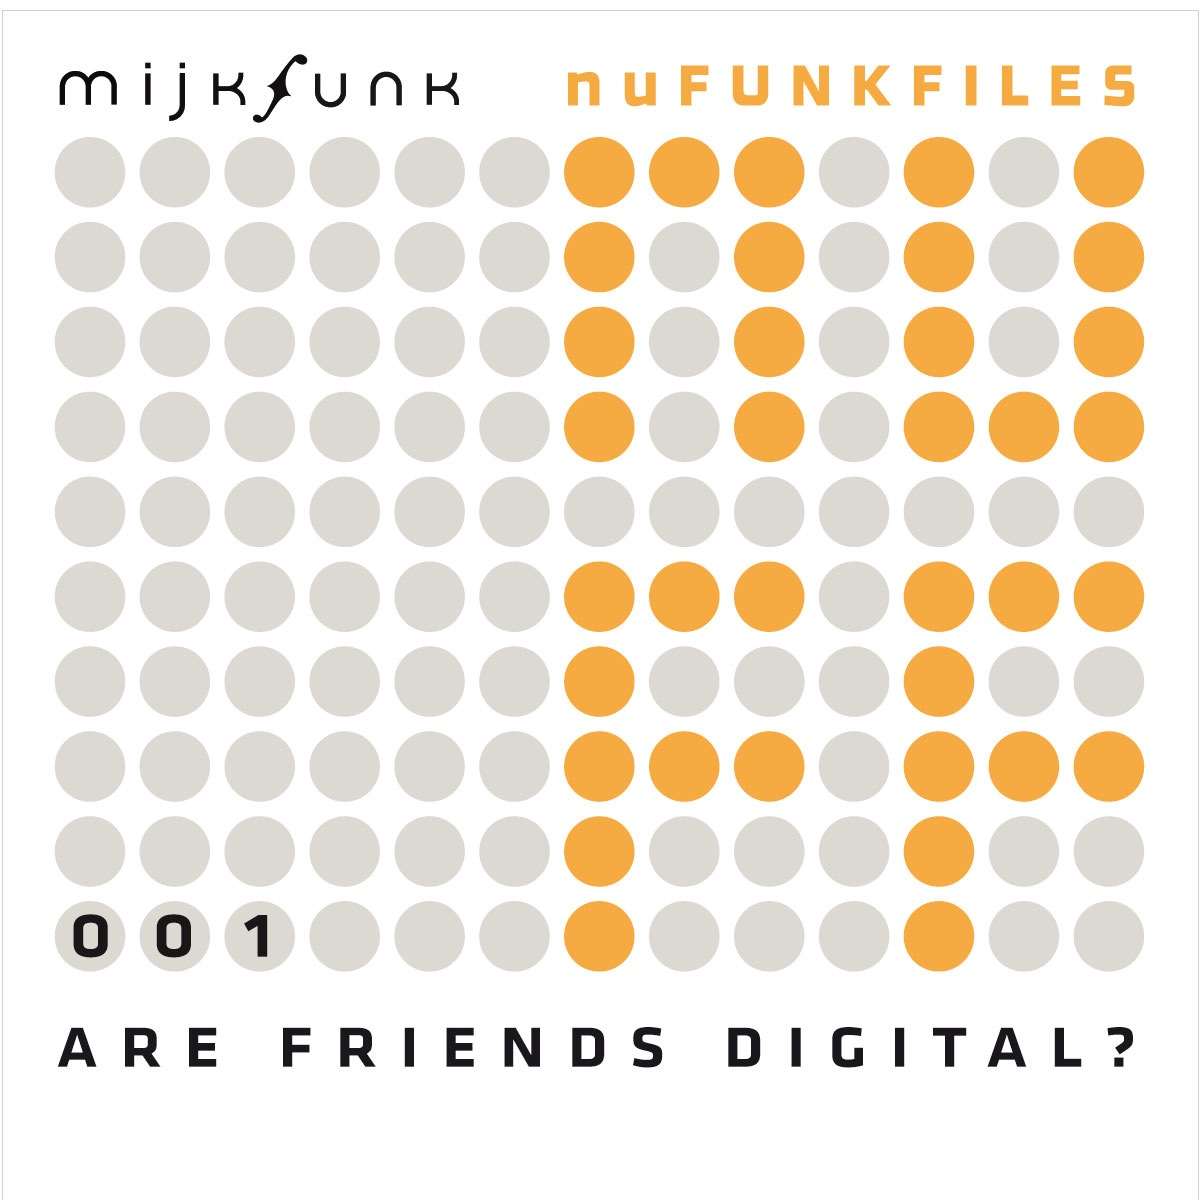 mijkfunk – Are Friends Digital? EP – nuFunkFiles 001